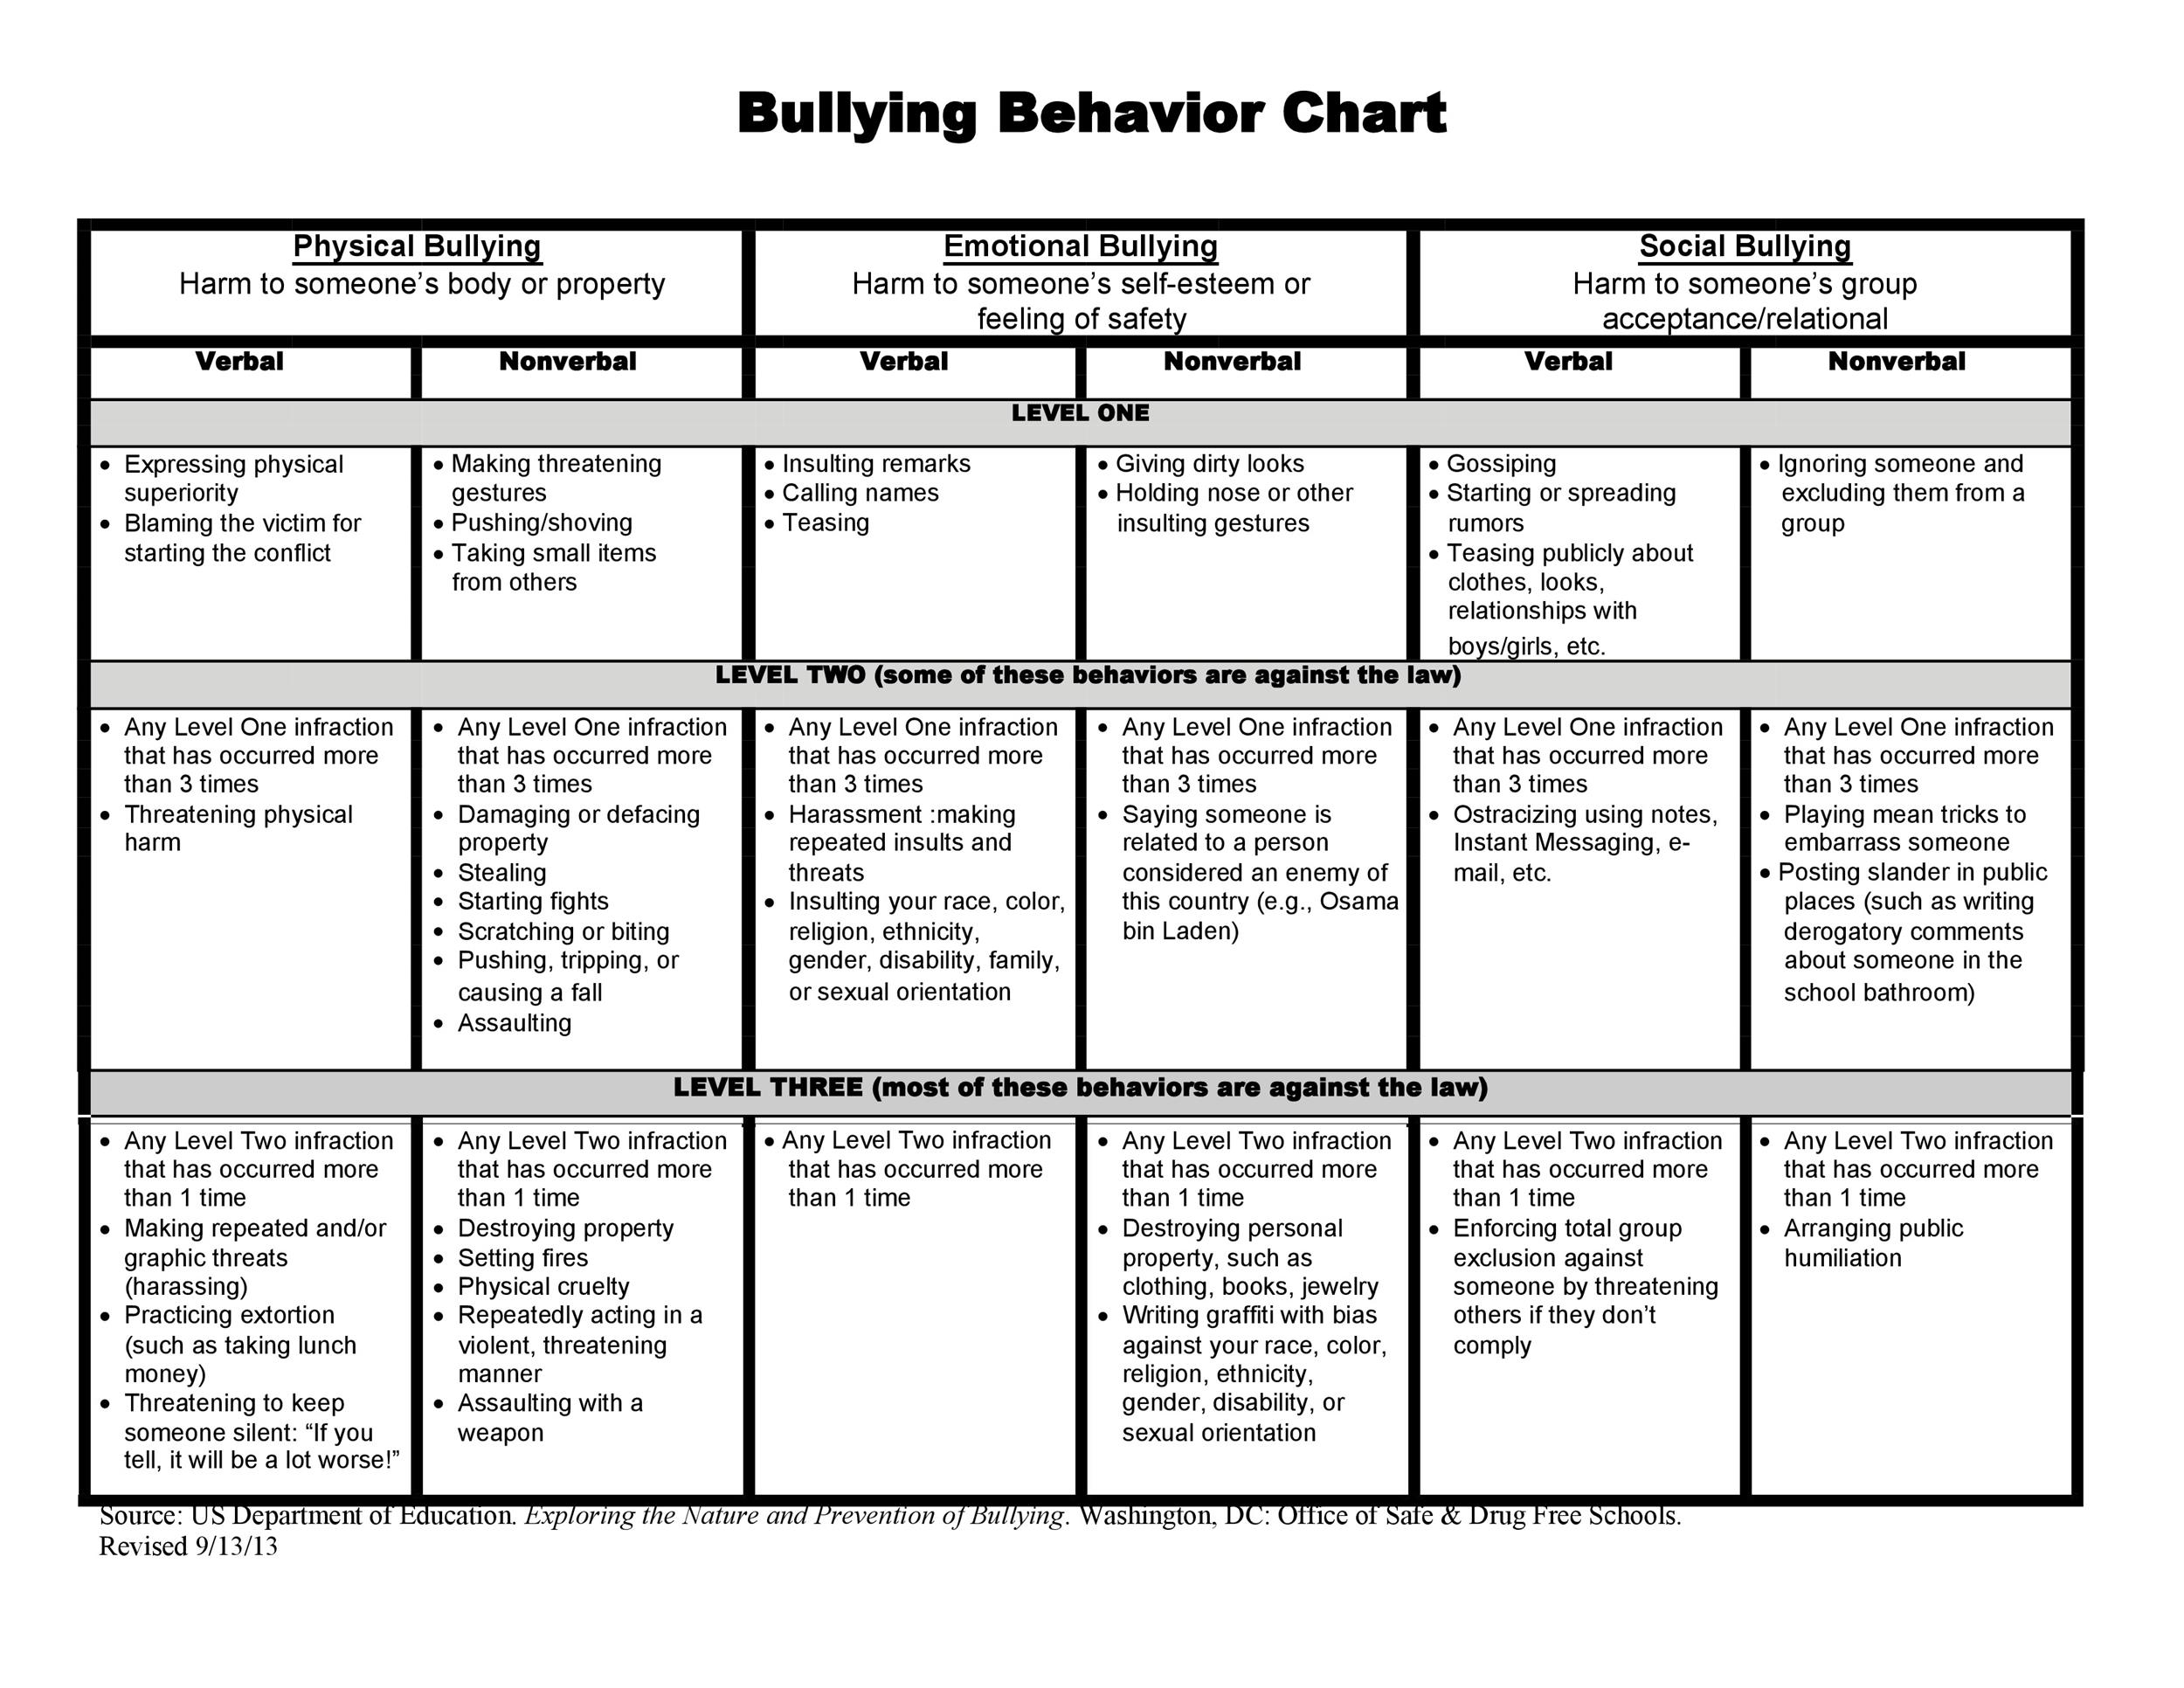 42 Printable Behavior Chart Templates for Kids ᐅ Template Lab